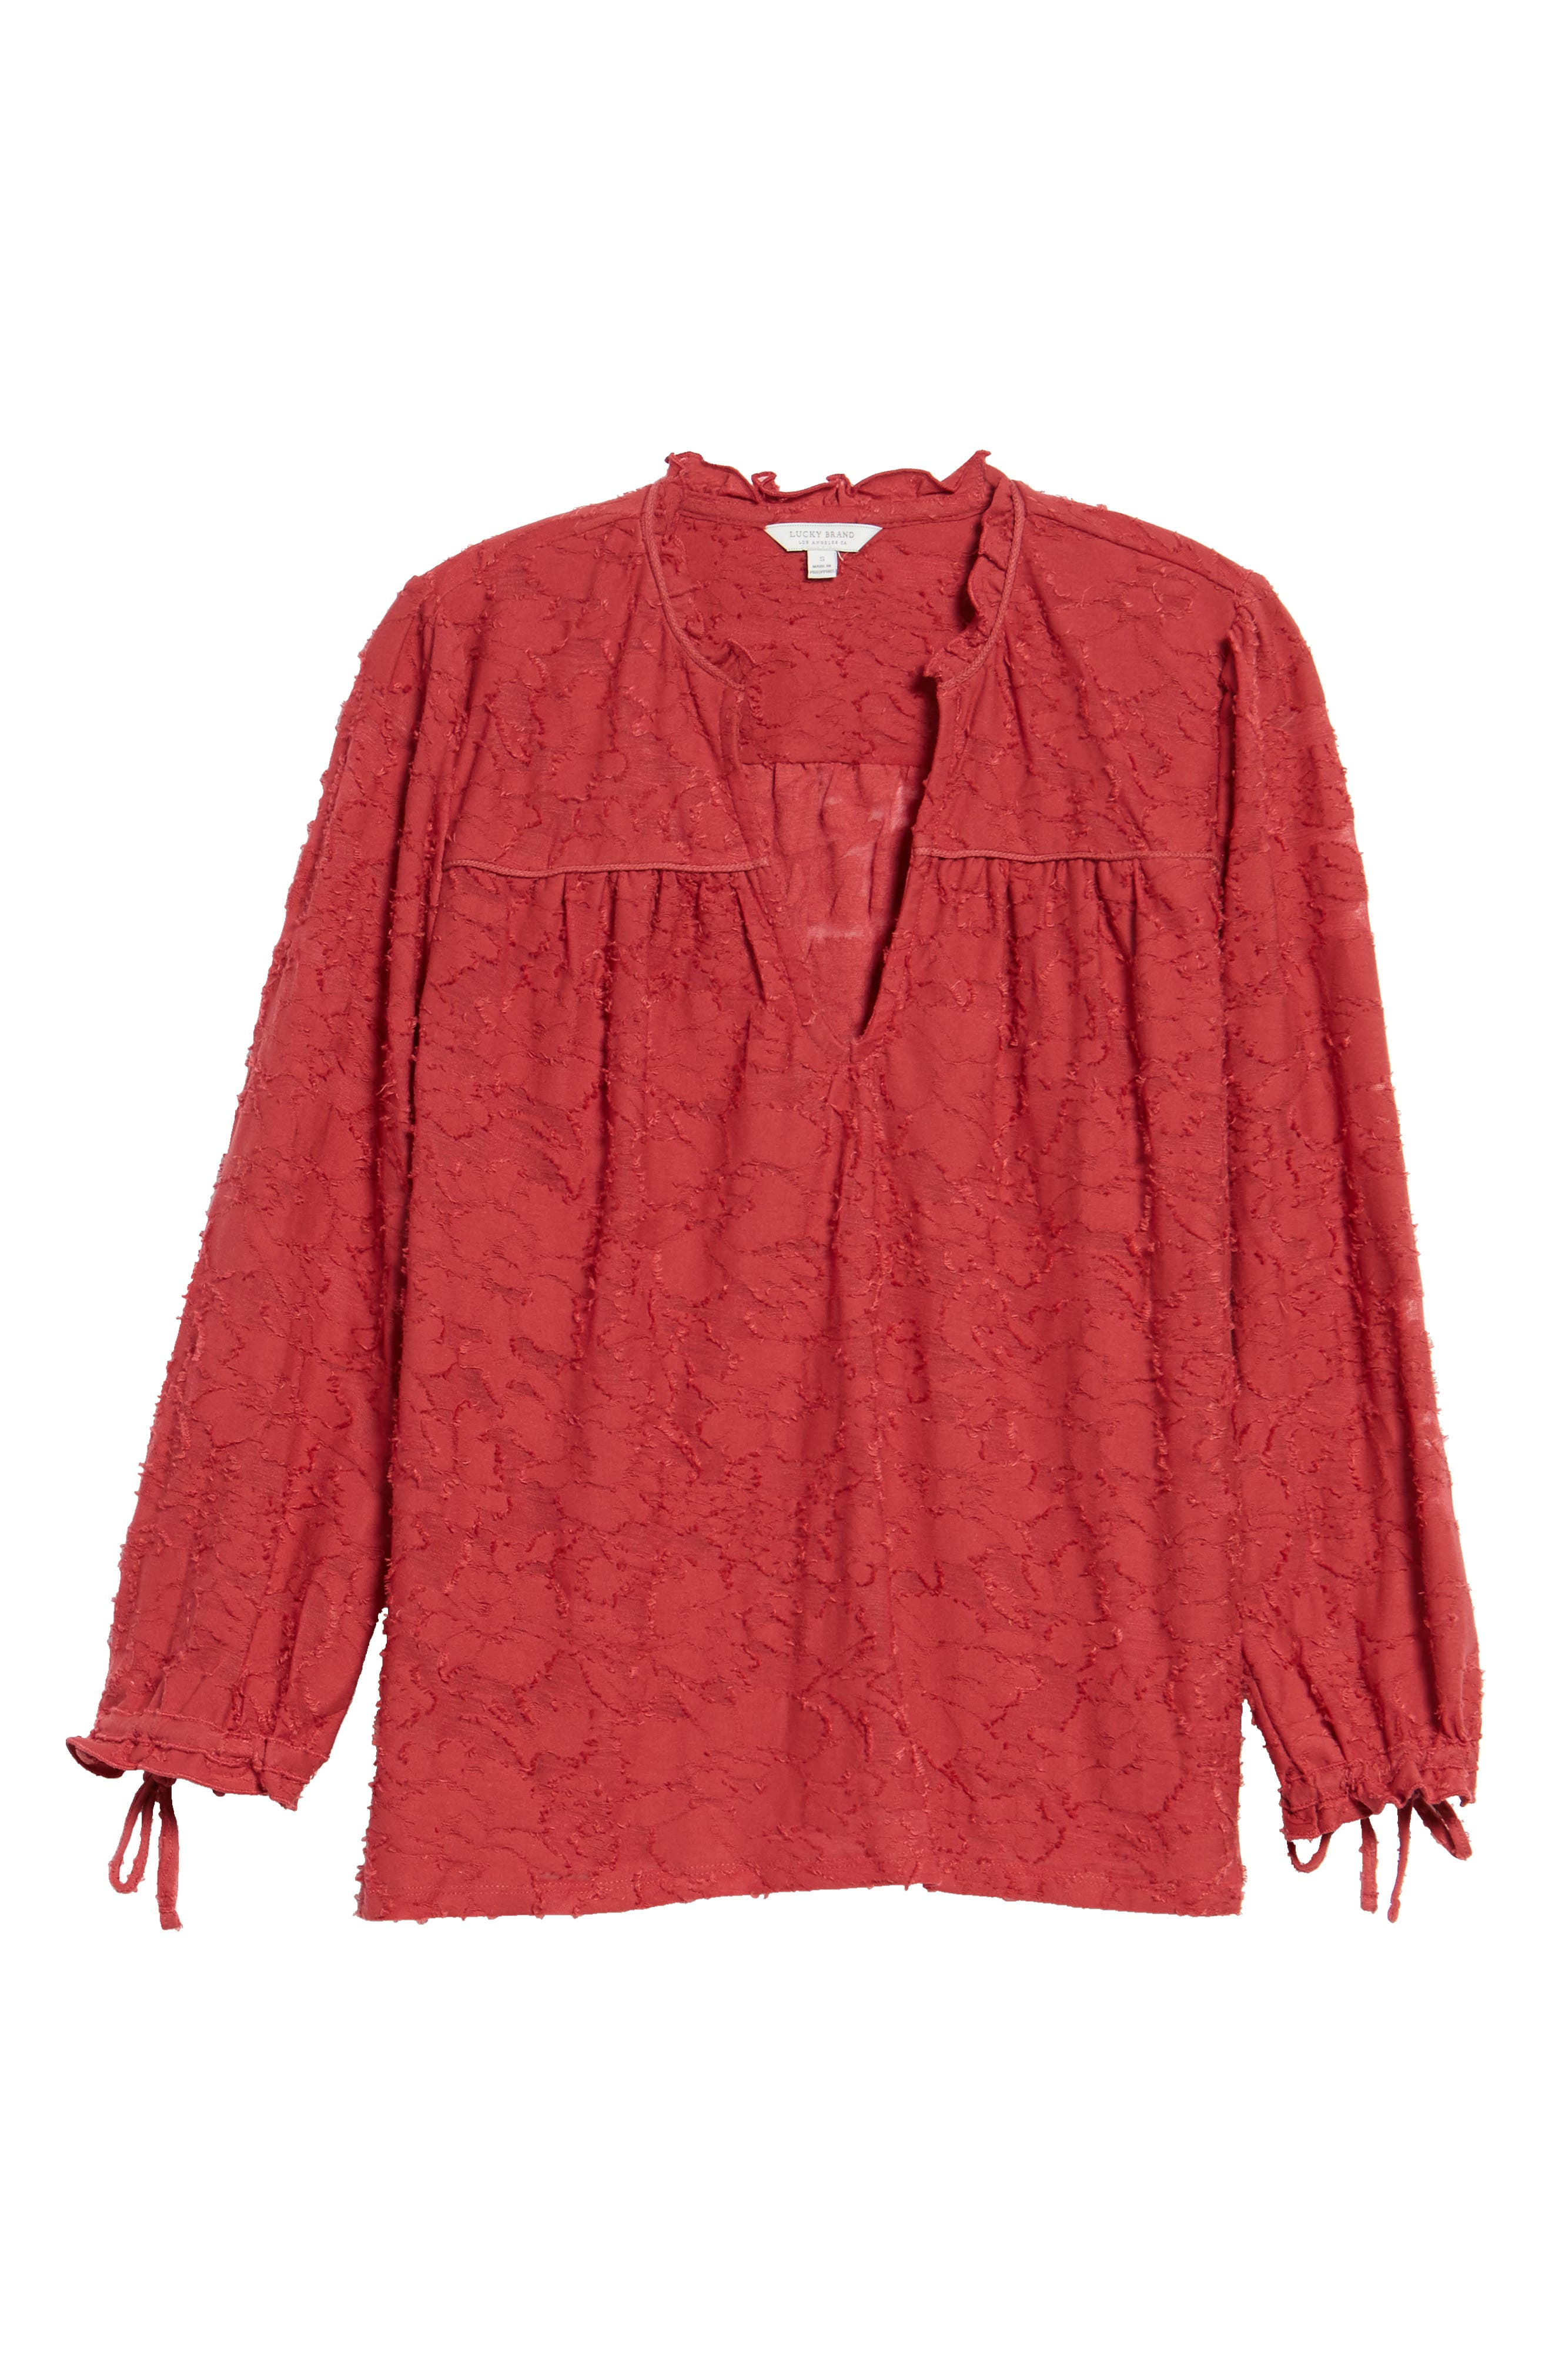 Main Image - Lucky Brand Floral Clipped Jacquard Top